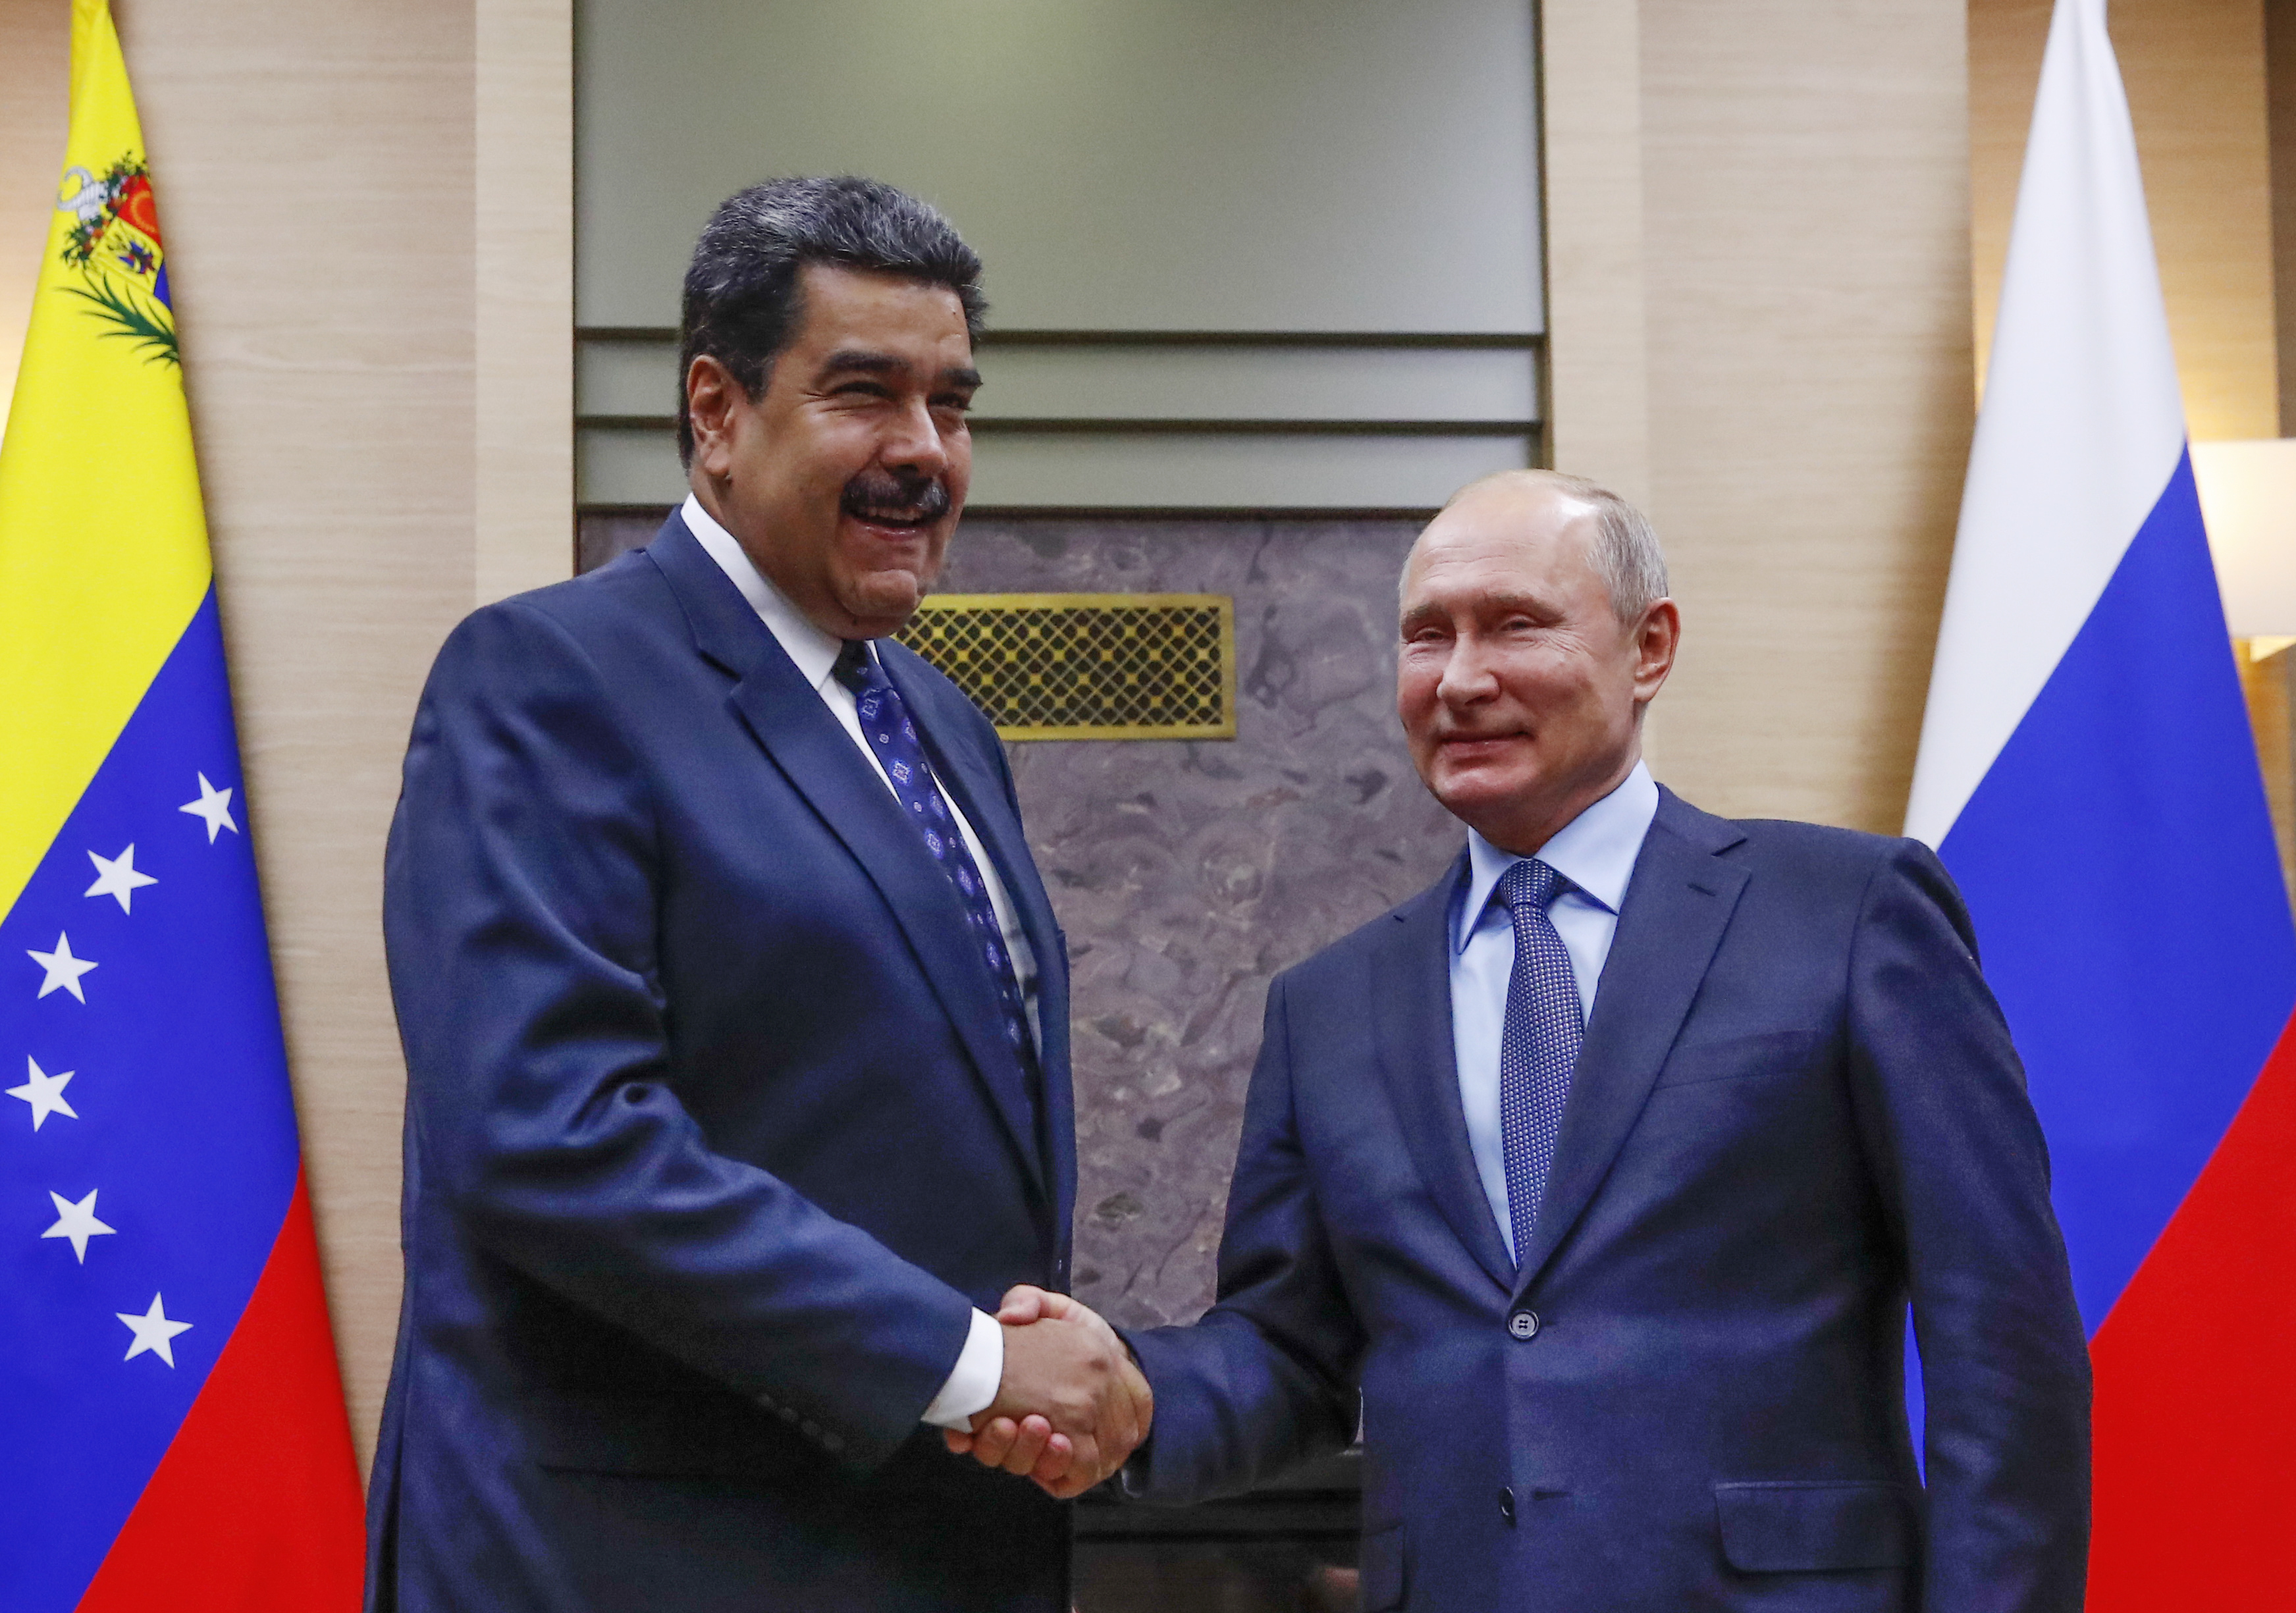 Russian President Vladimir Putin, right, shakes hands with his Venezuelan counterpart Nicolas Maduro during their meeting at the Novo-Ogaryovo residence outside in Moscow, Russia, Dec. 5, 2018.